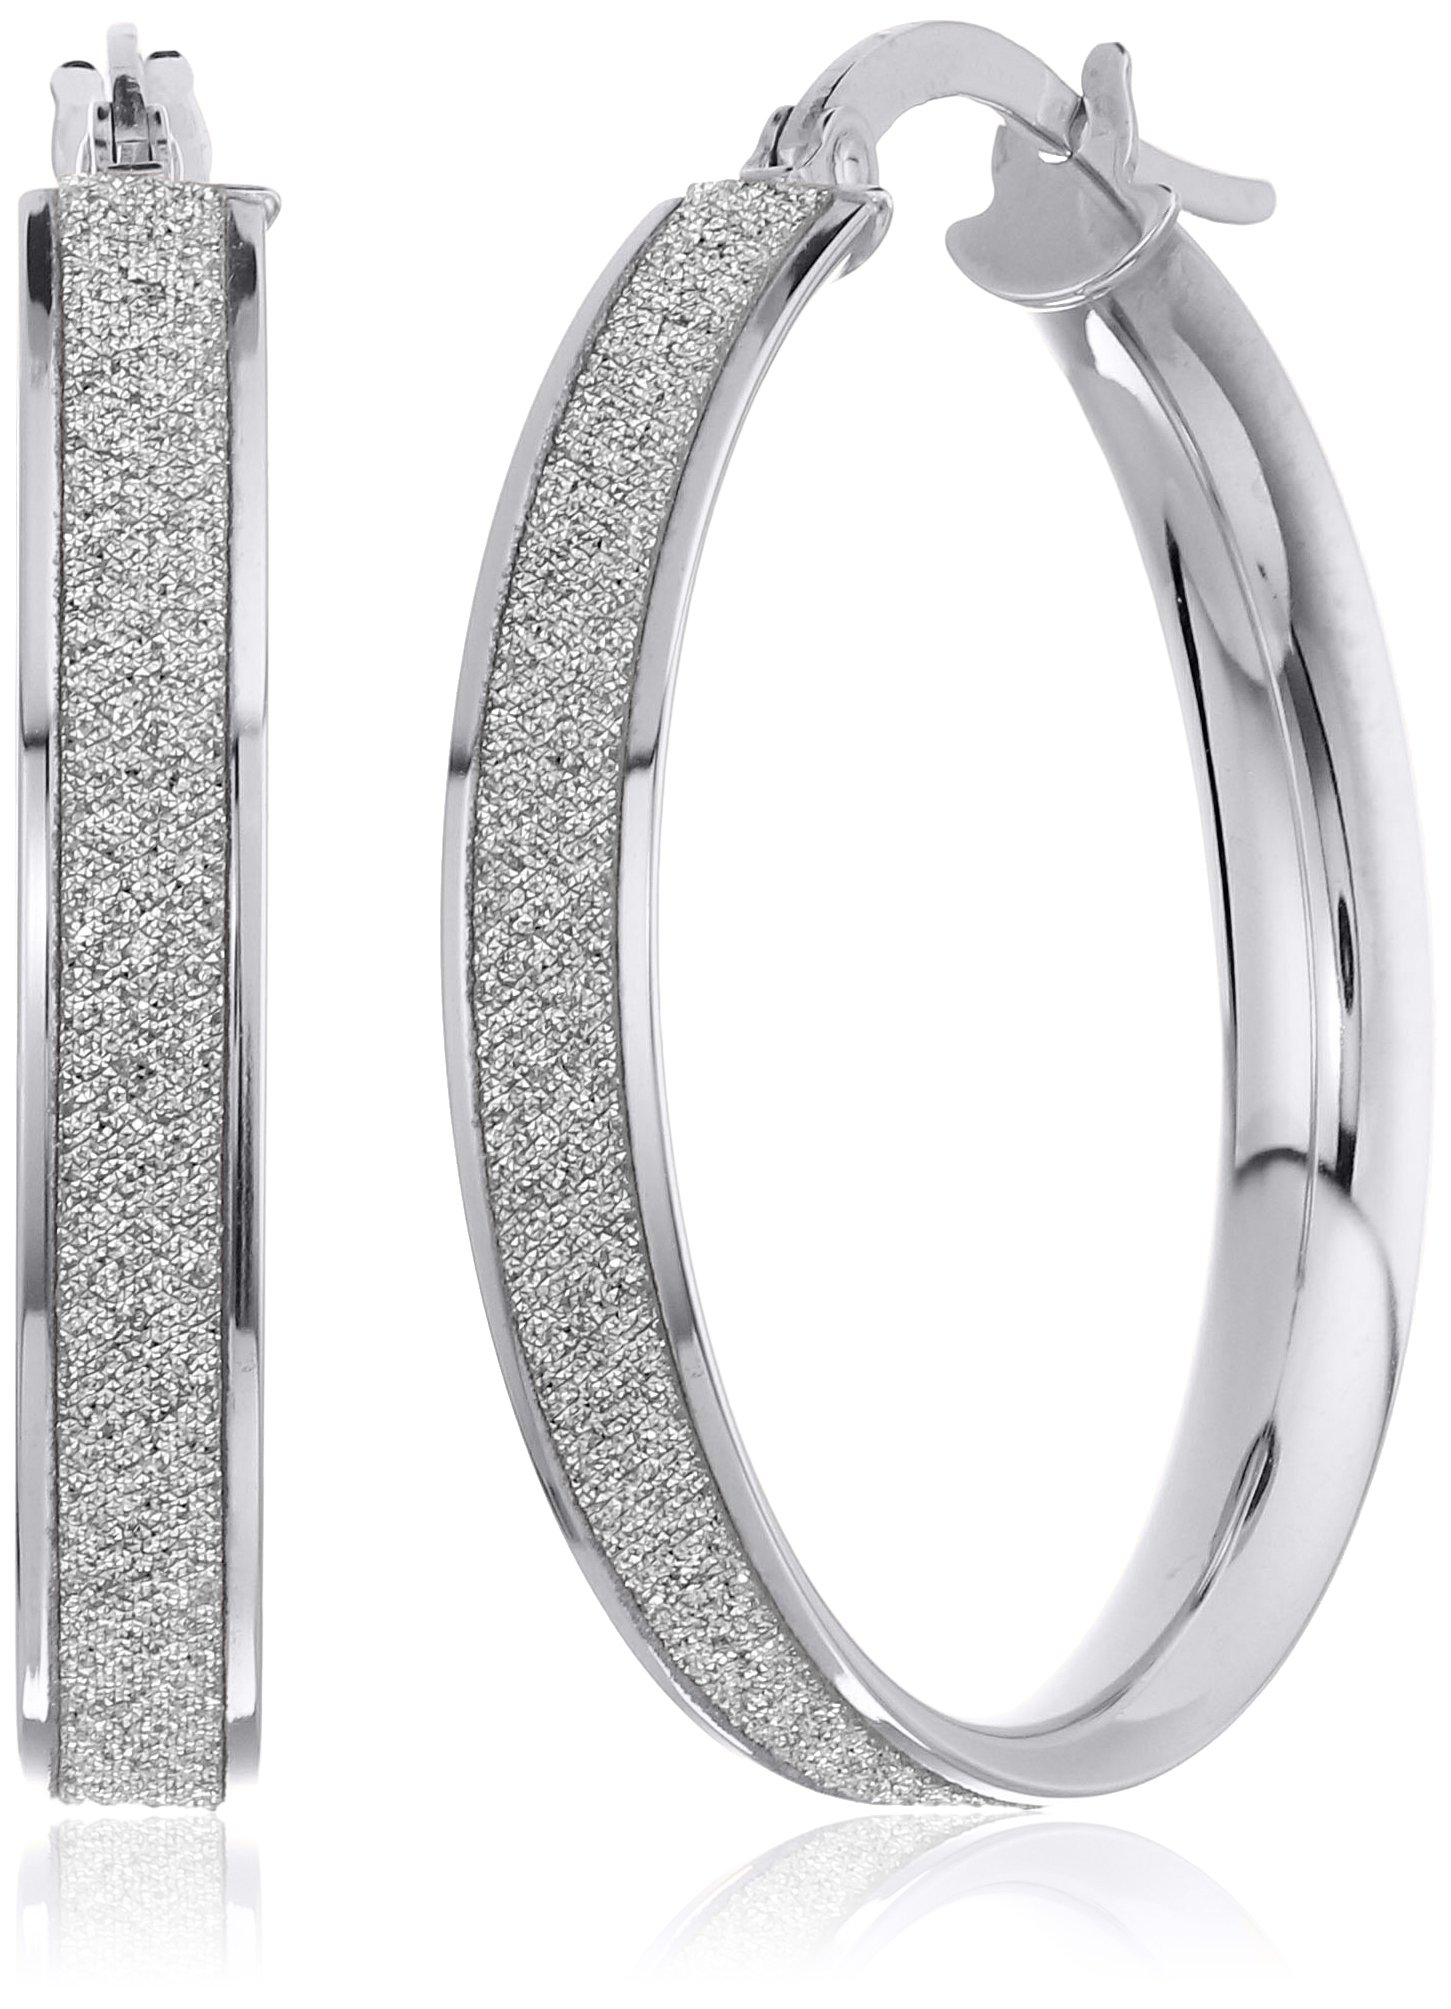 14k White Gold Italian 20 mm Hoop Earrings with Pave Style Glitter Hoop Earrings by Amazon Collection